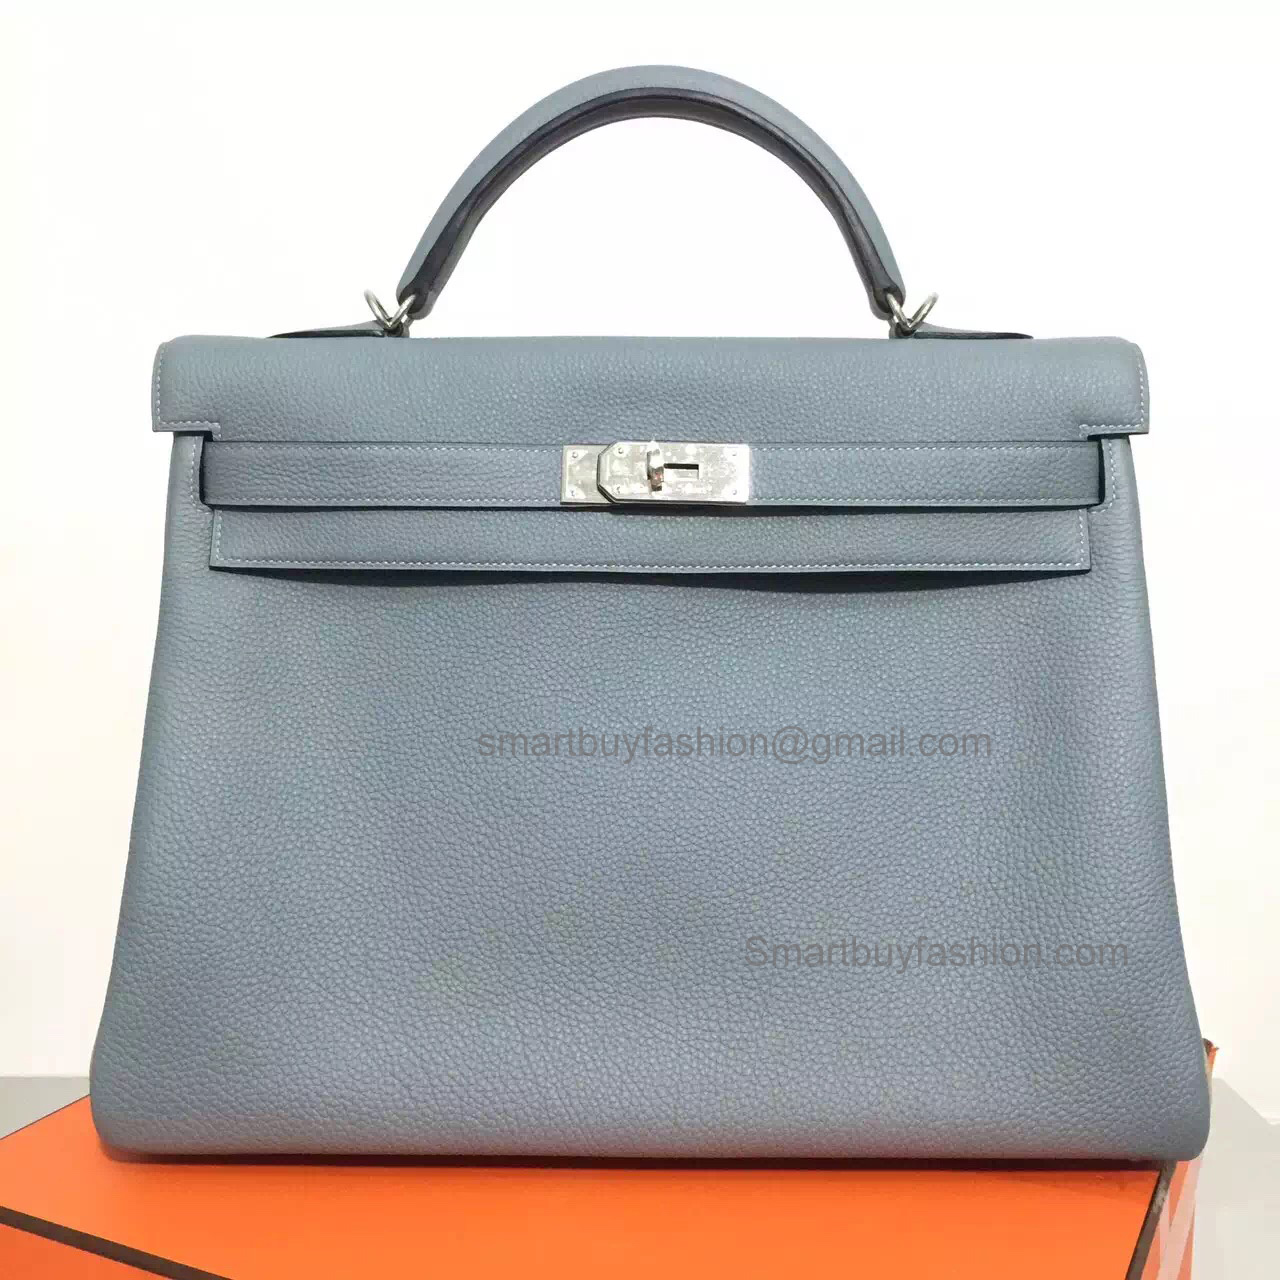 Handmade Hermes Kelly 40 Replica Bag in Bicolored j7 Blue Lin Togo Calfskin PHW